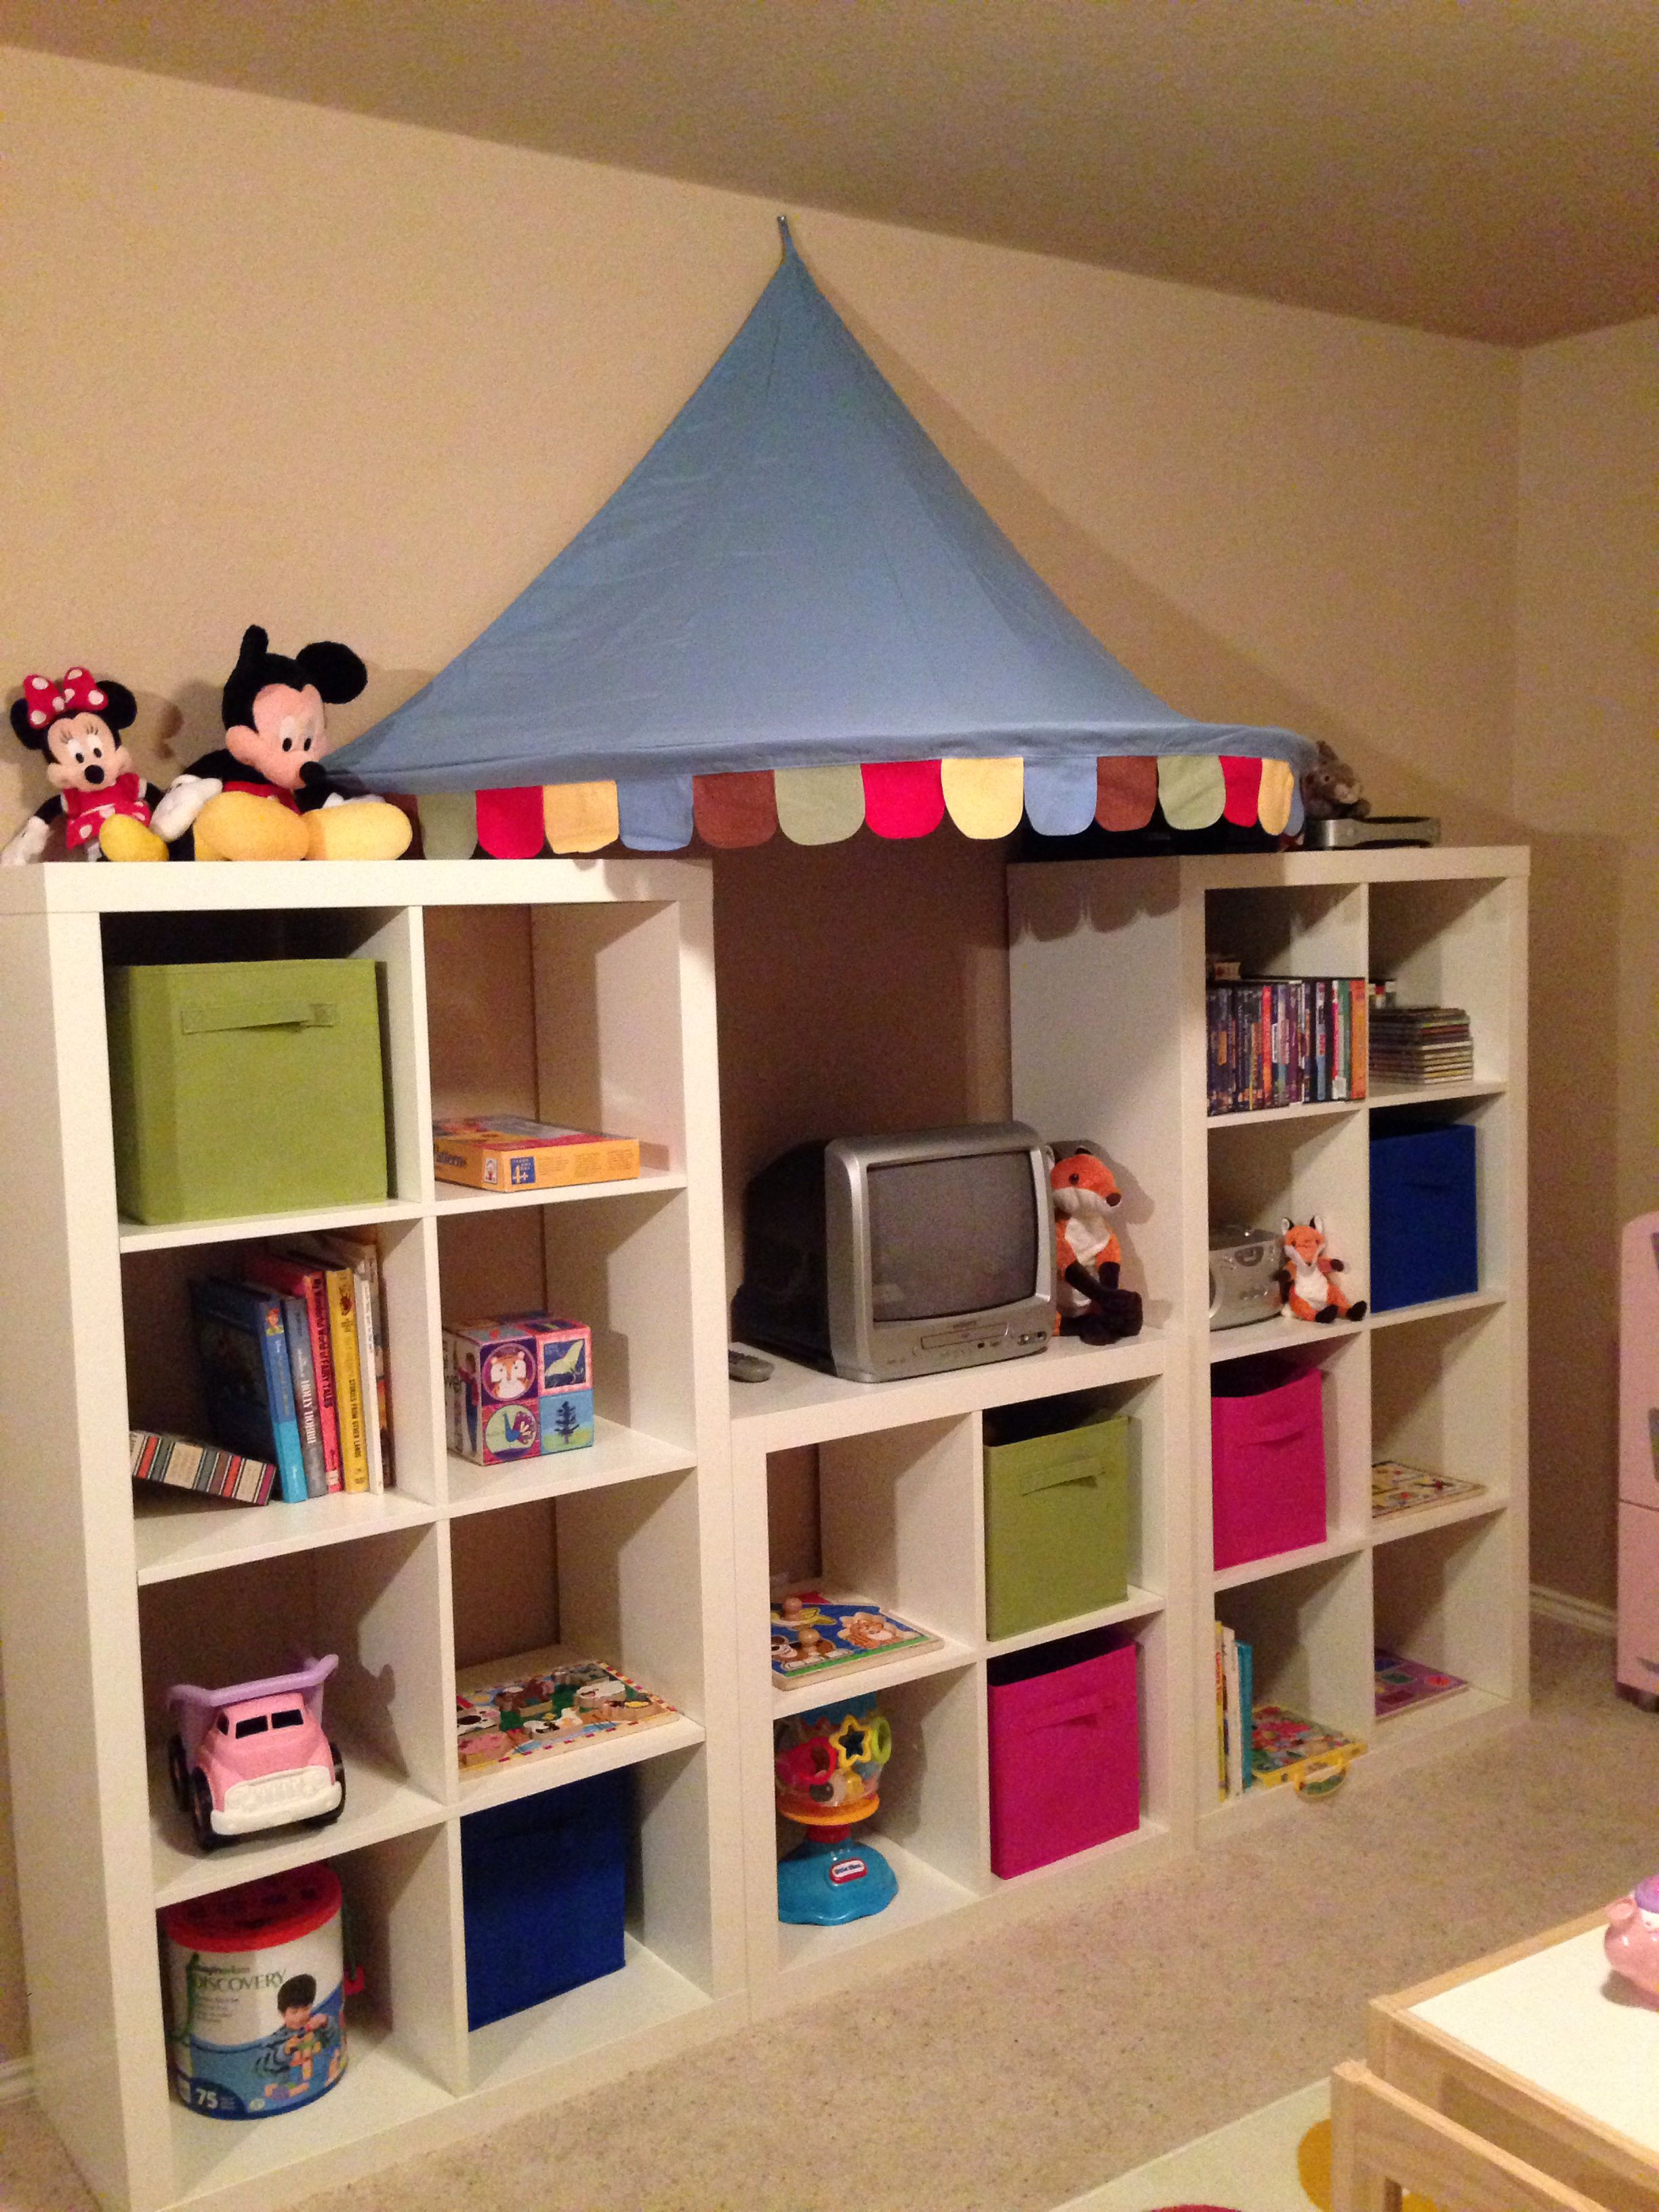 playroom shelving expedit shelves and awning from ikea storage bins from target play room. Black Bedroom Furniture Sets. Home Design Ideas